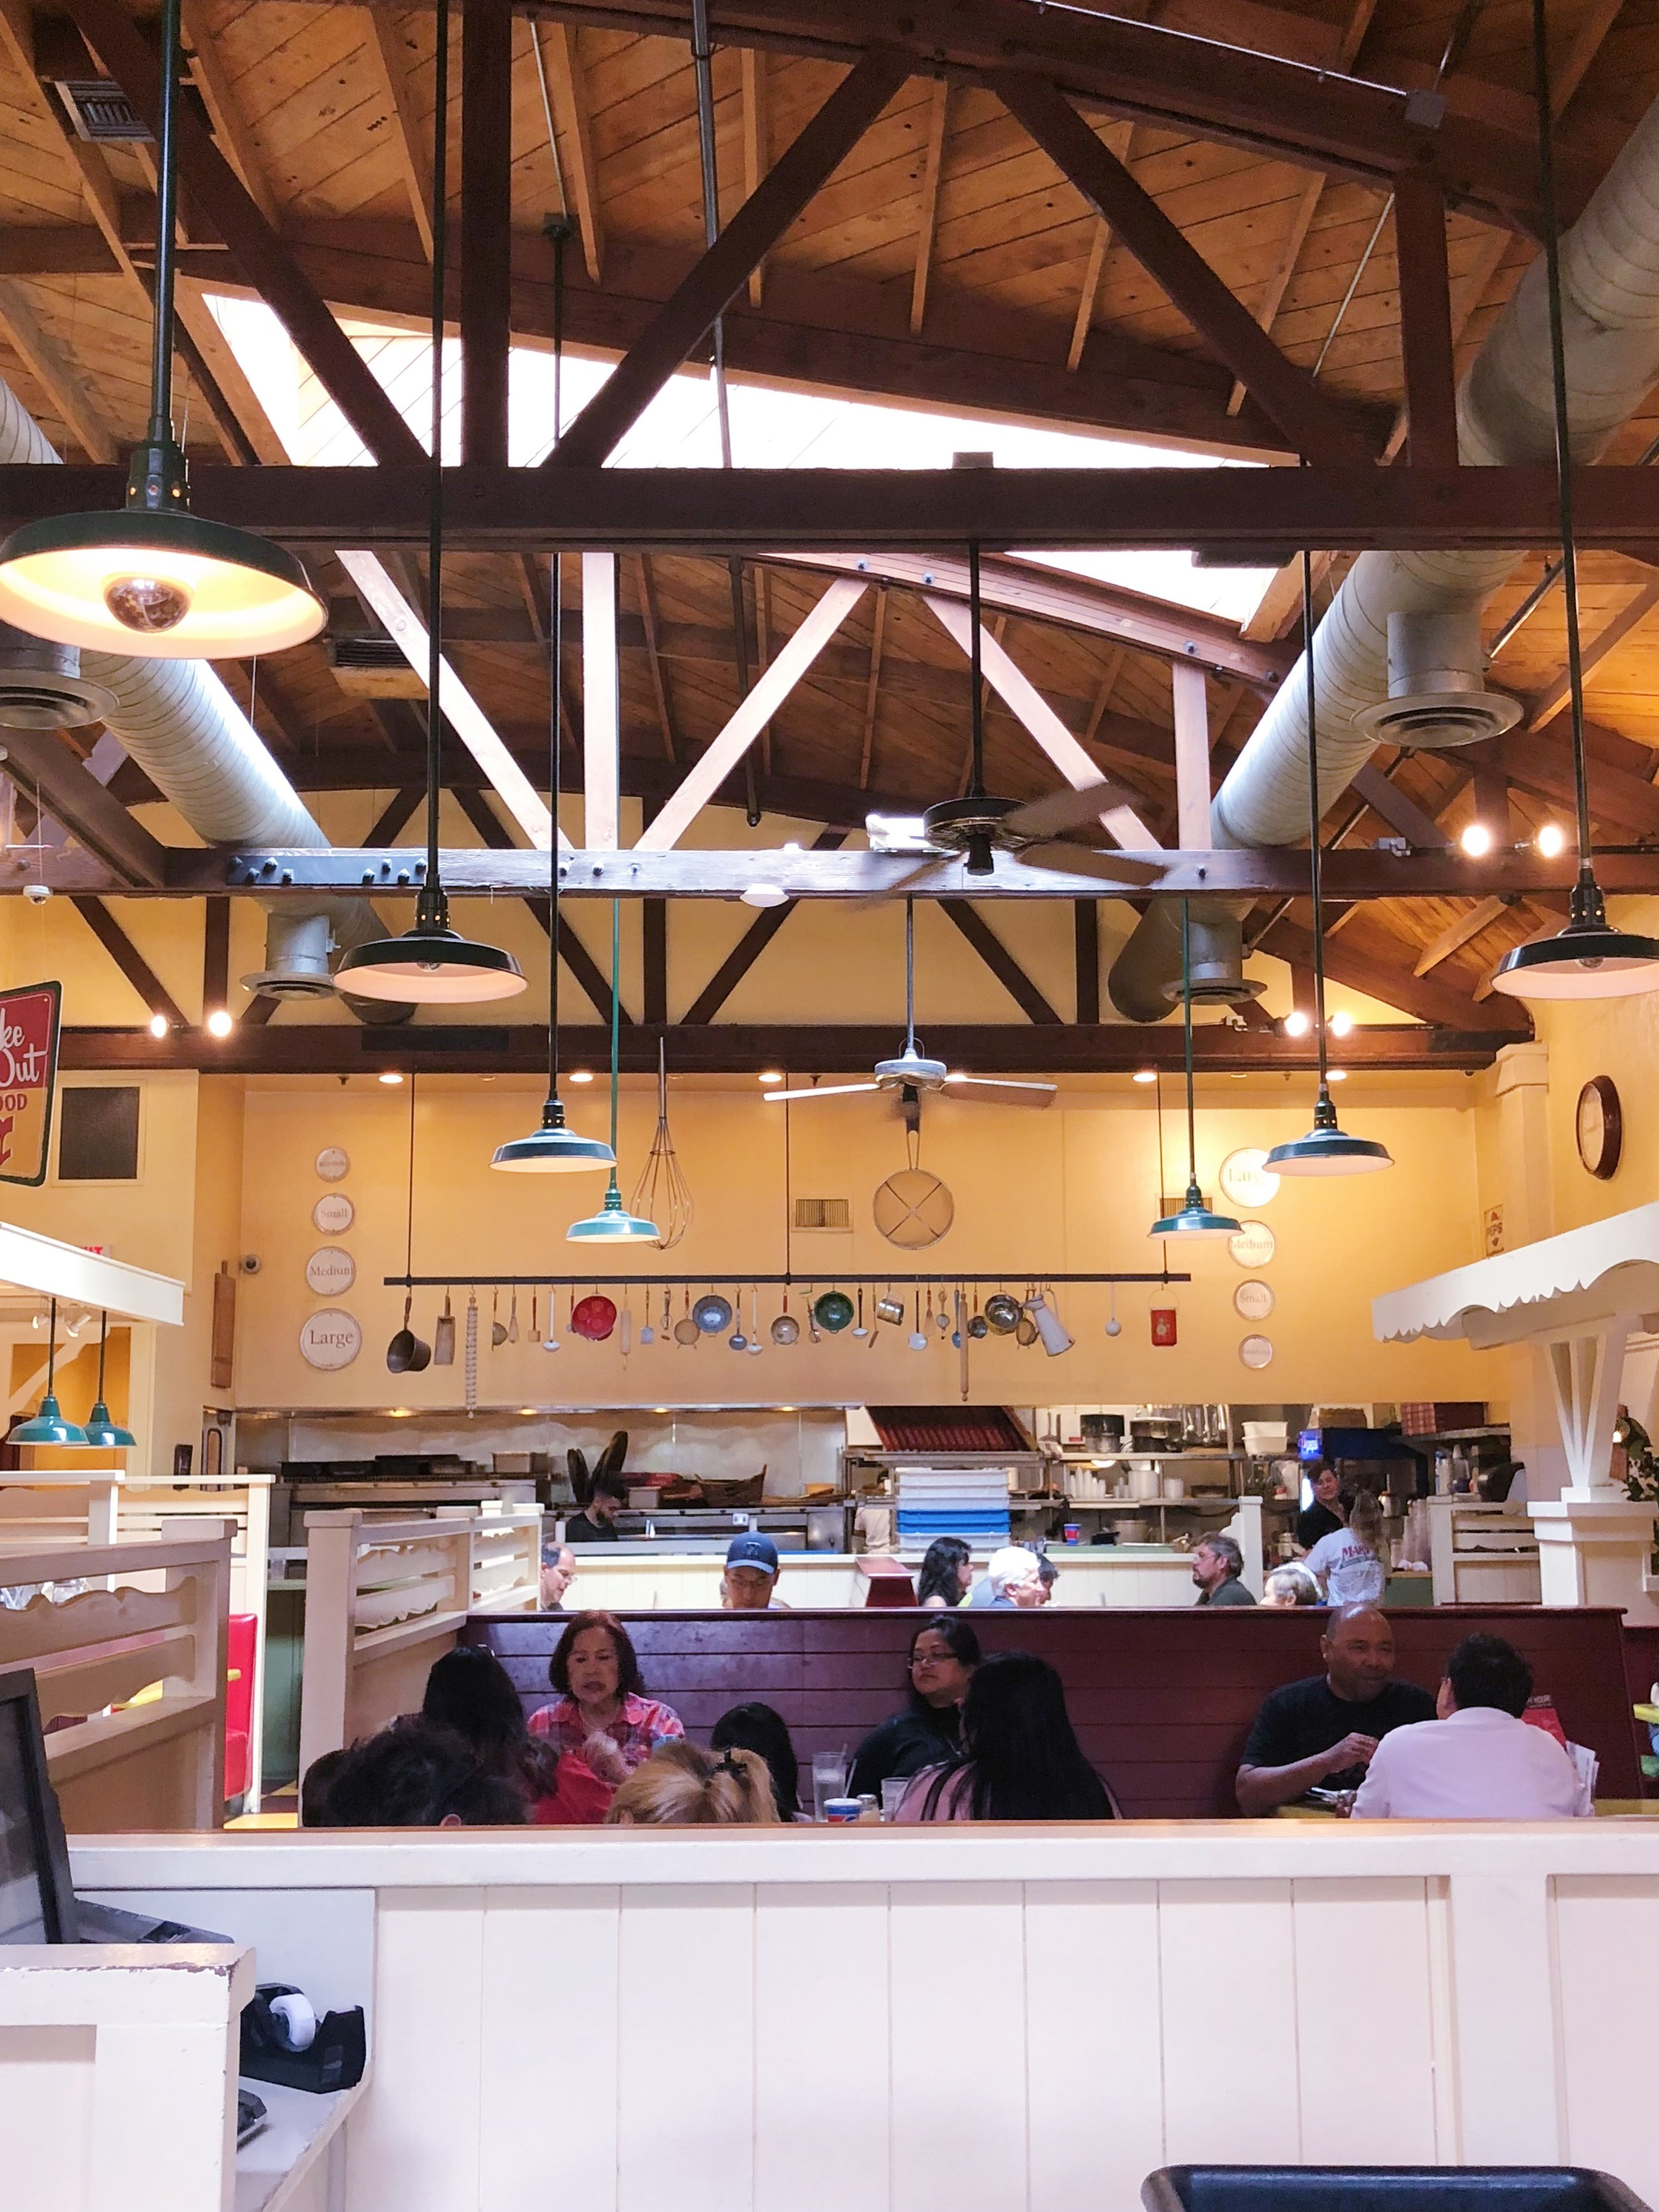 Marys Pizza Shack Sonoma Interior.JPG